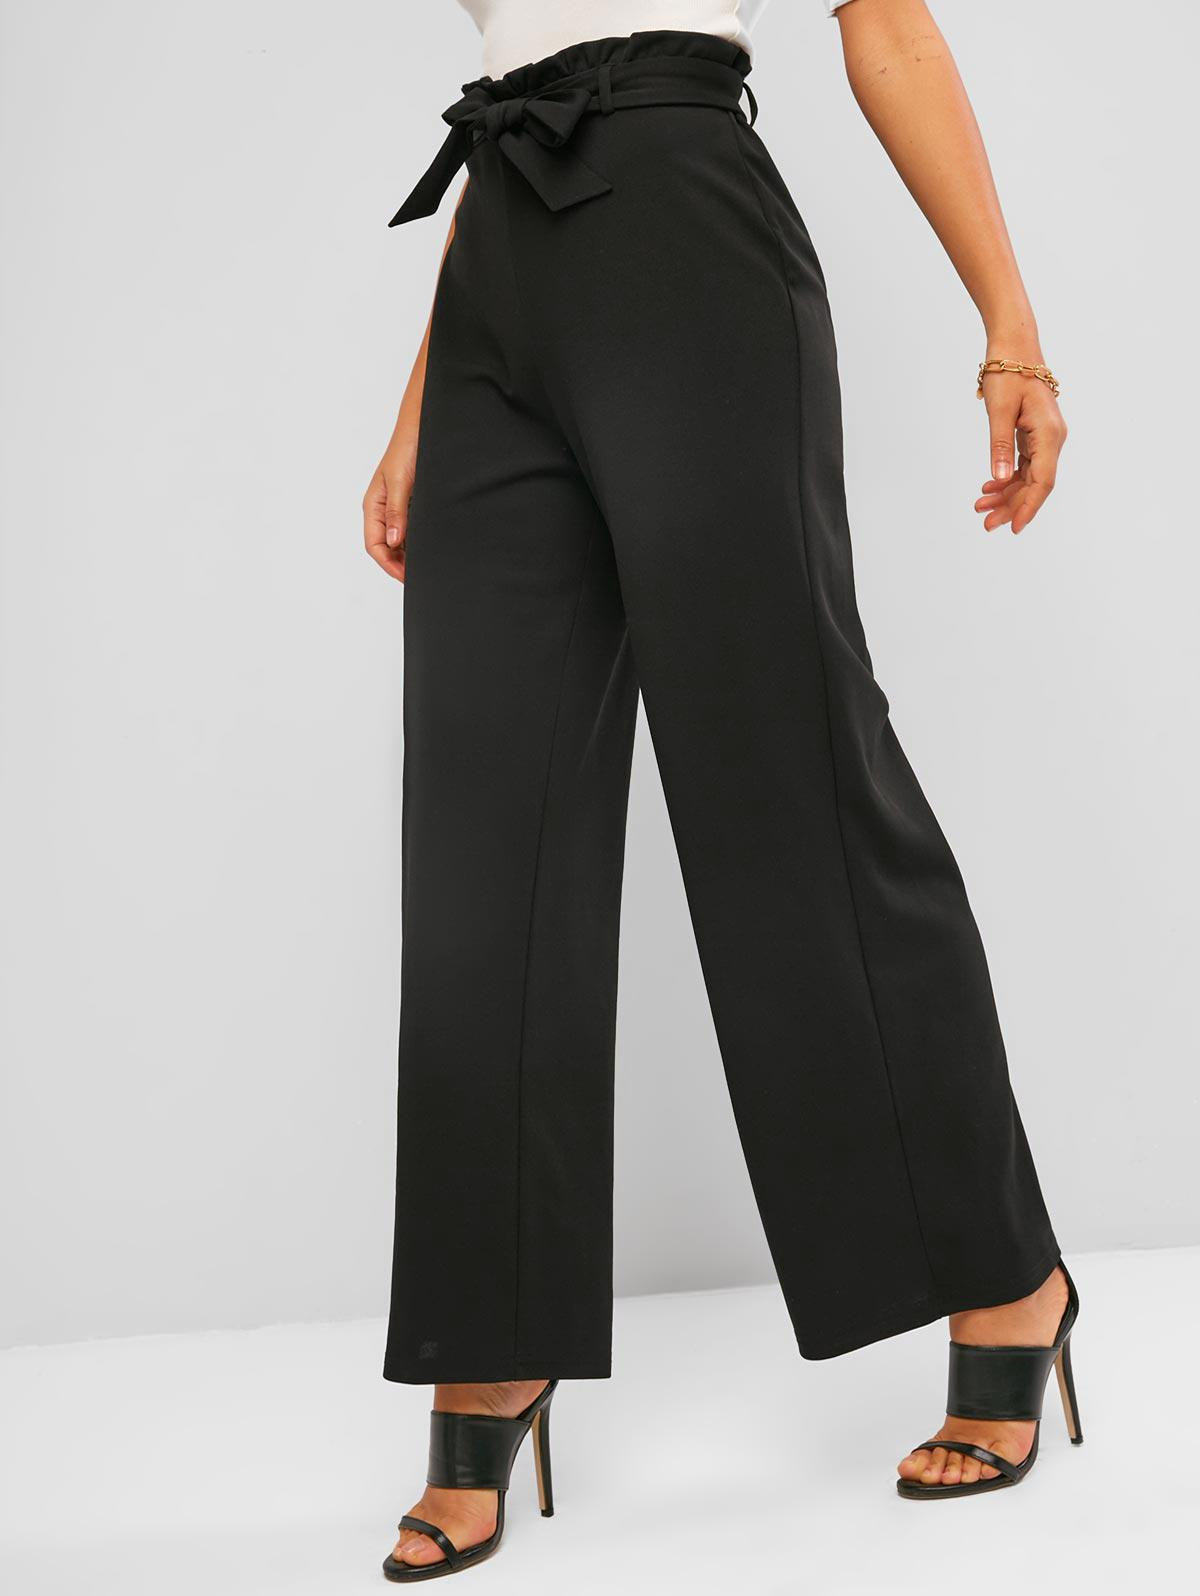 ZAFUL Belted Wide Leg Paperbag Pants